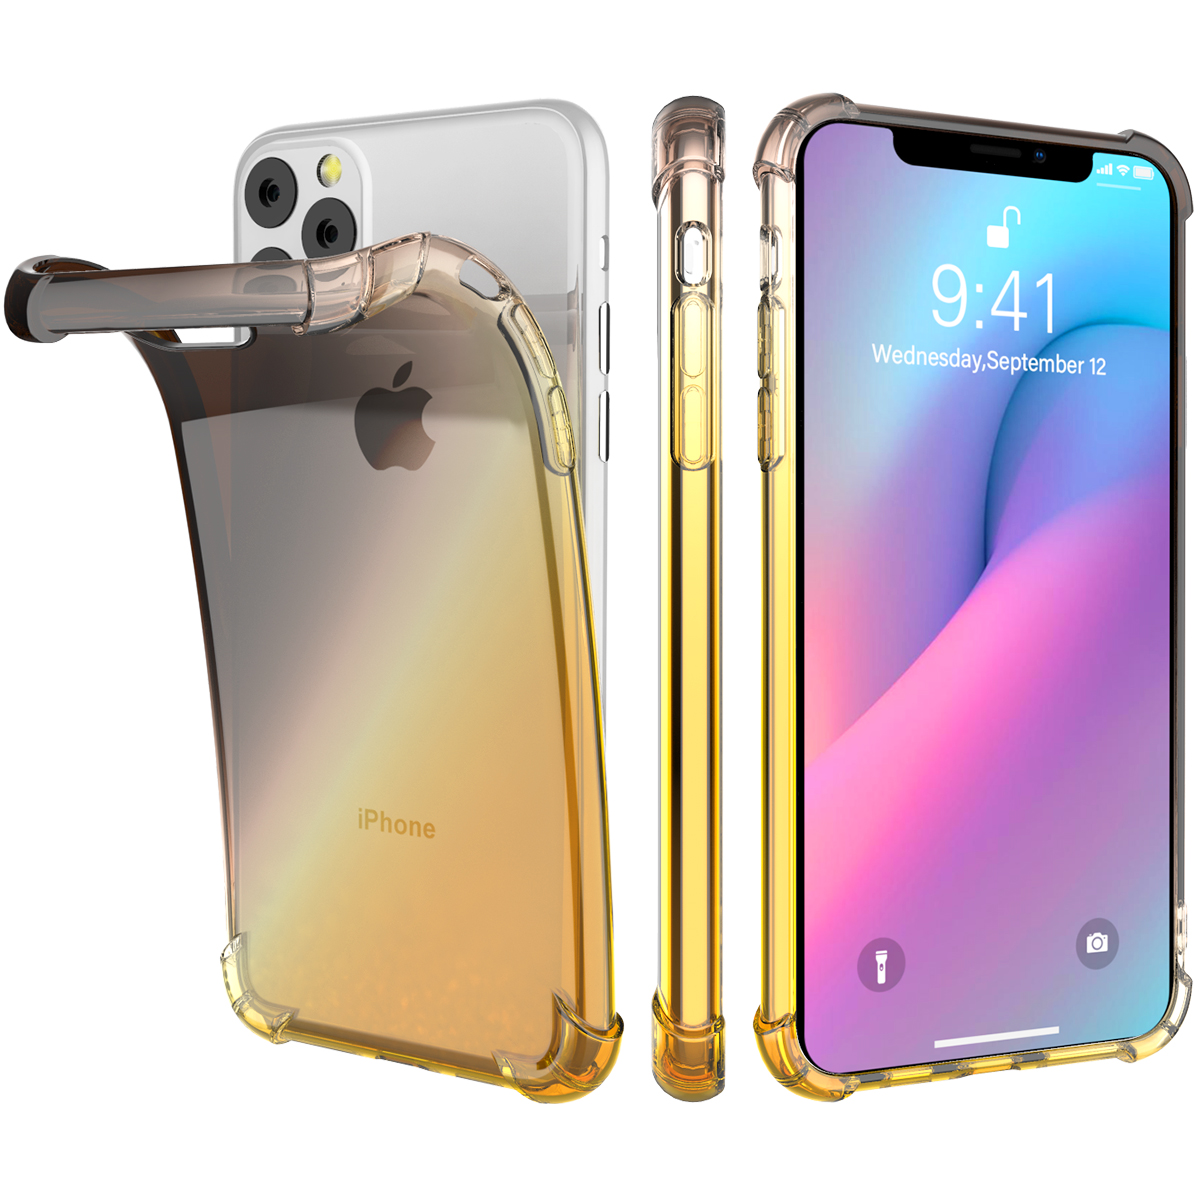 Gradient Soft TPU Case for iPhone 11/11 Pro/11 Pro Max 12